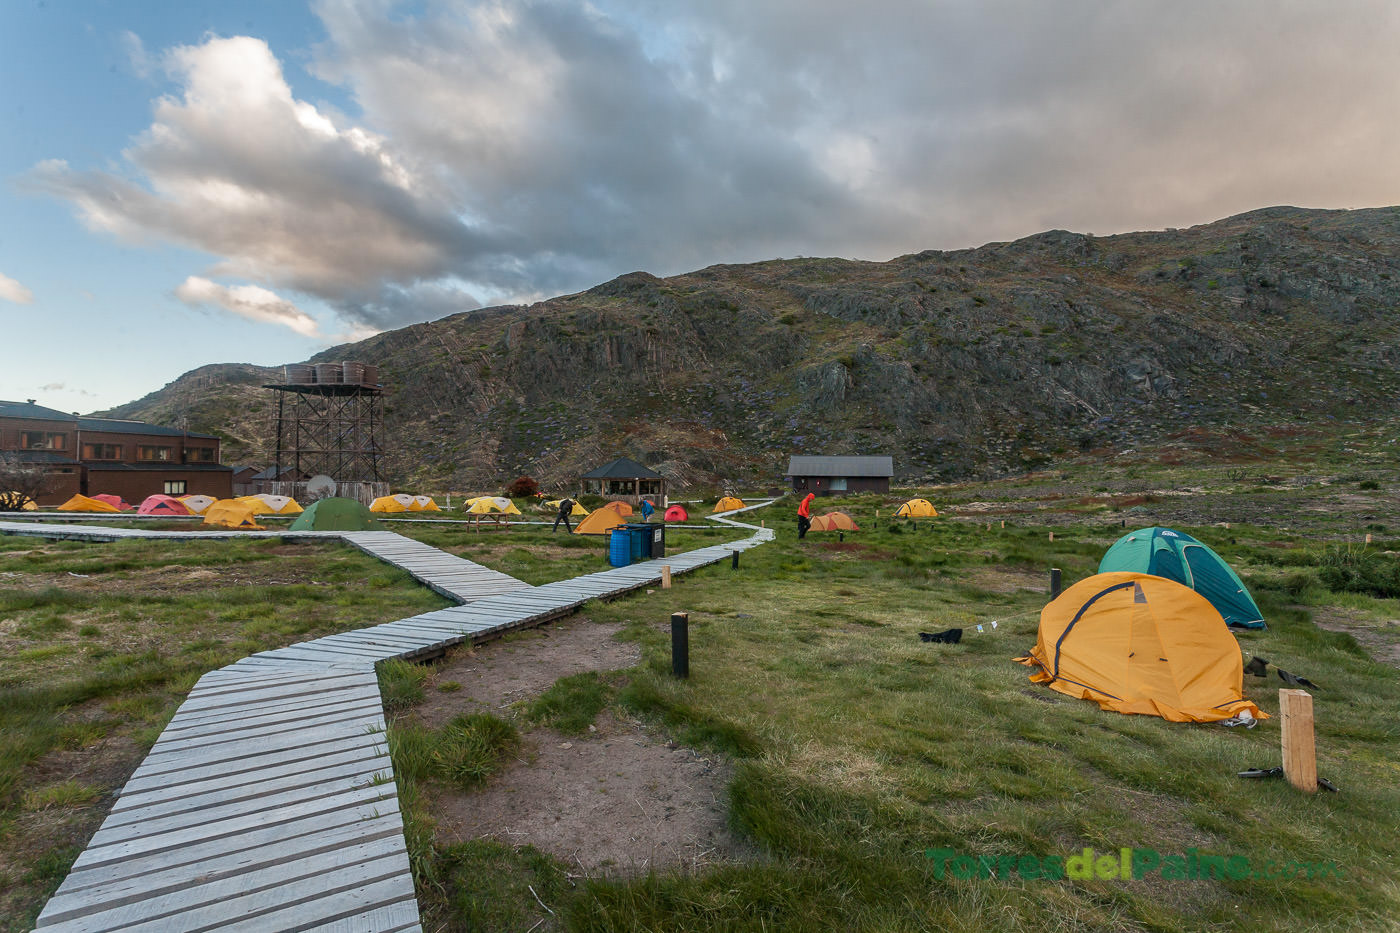 Circuito W Torres Del Paine Camping : Paine grande shelter and camping torresdelpaine